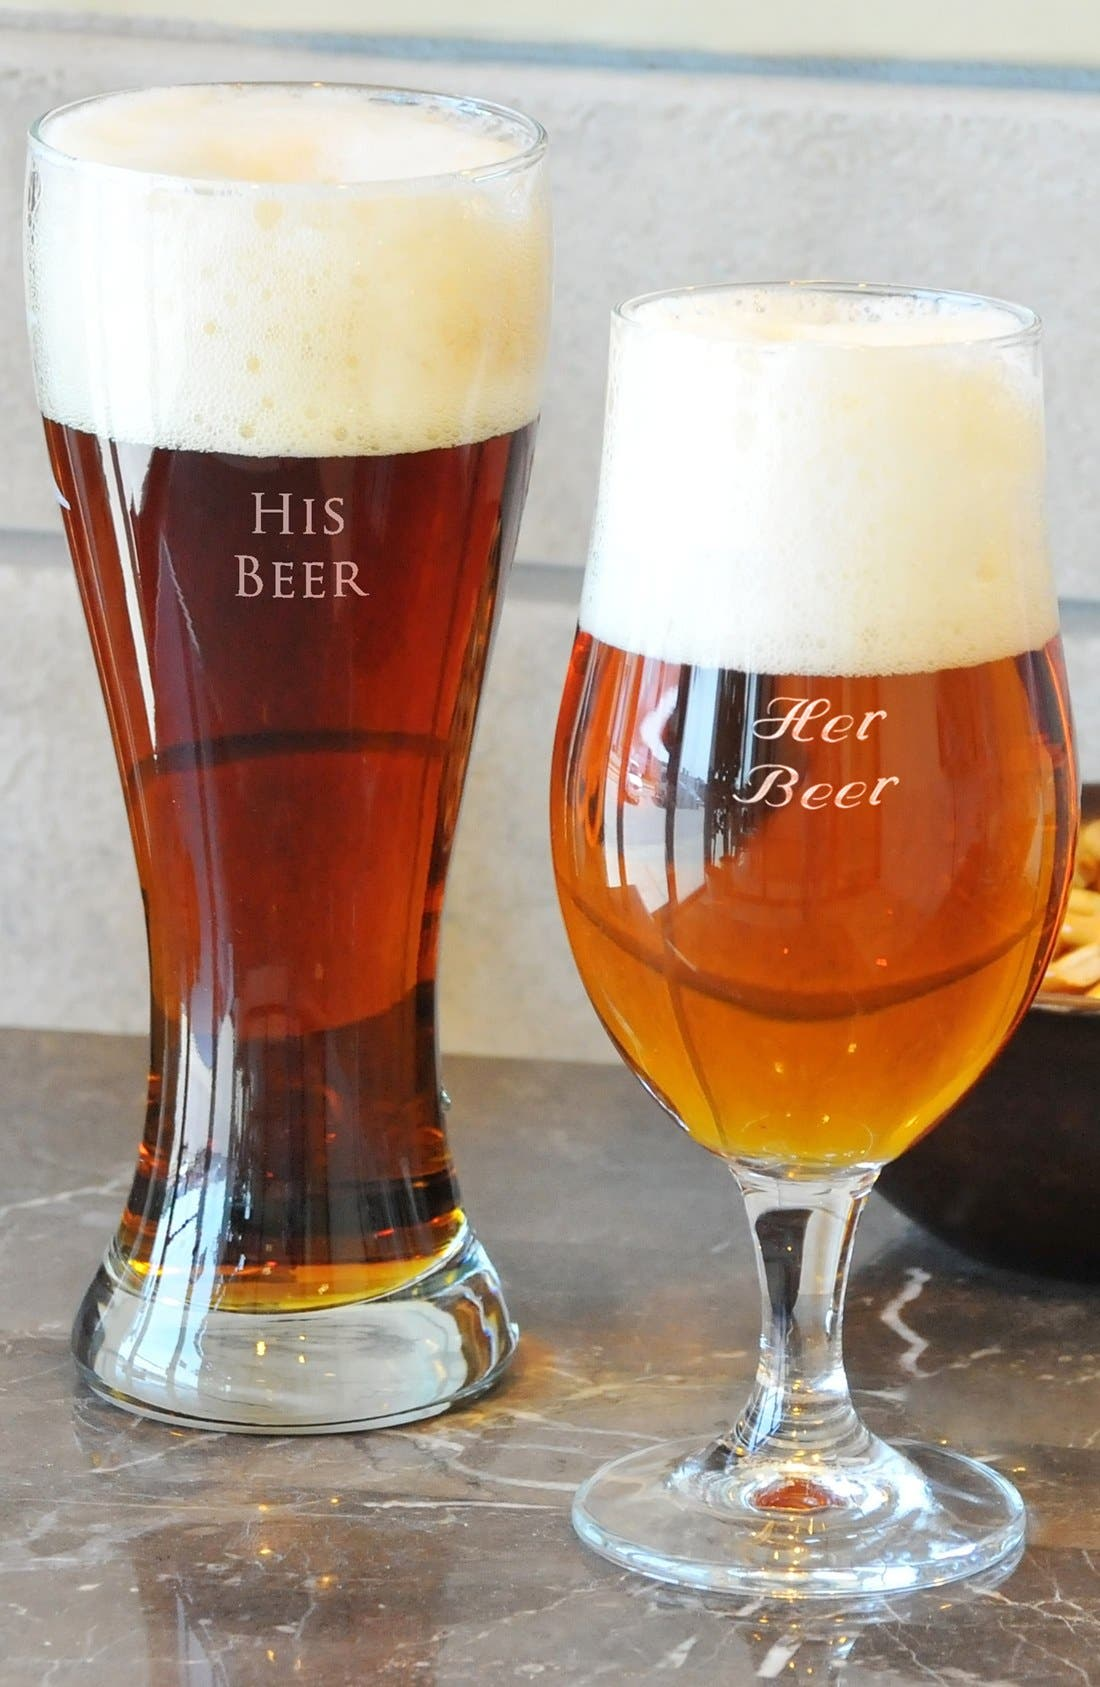 Cathy's Concepts 'His Beer & Her Beer' Monogram Pilsner Glasses (Set of 2)